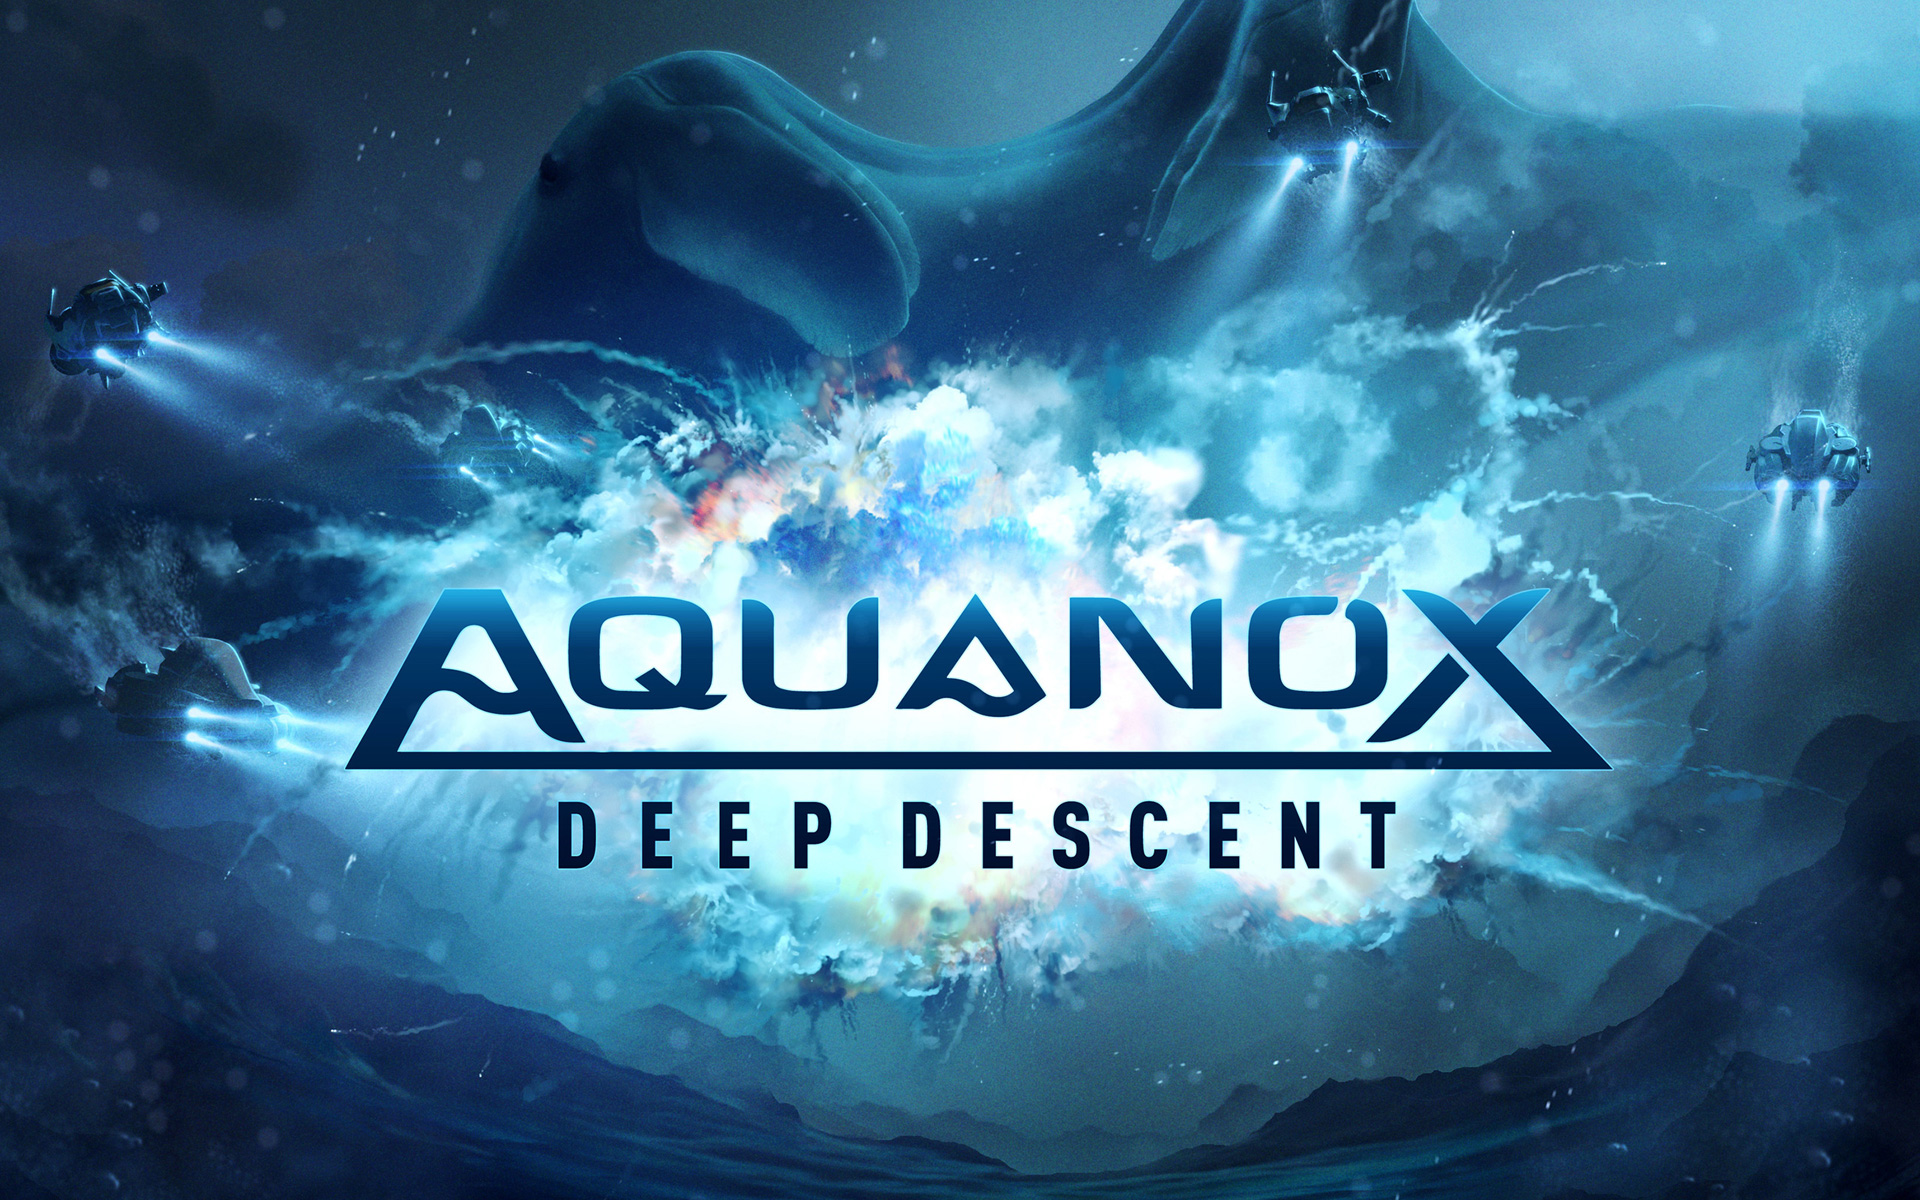 Free Aquanox Deep Descent Wallpaper in 1920x1200